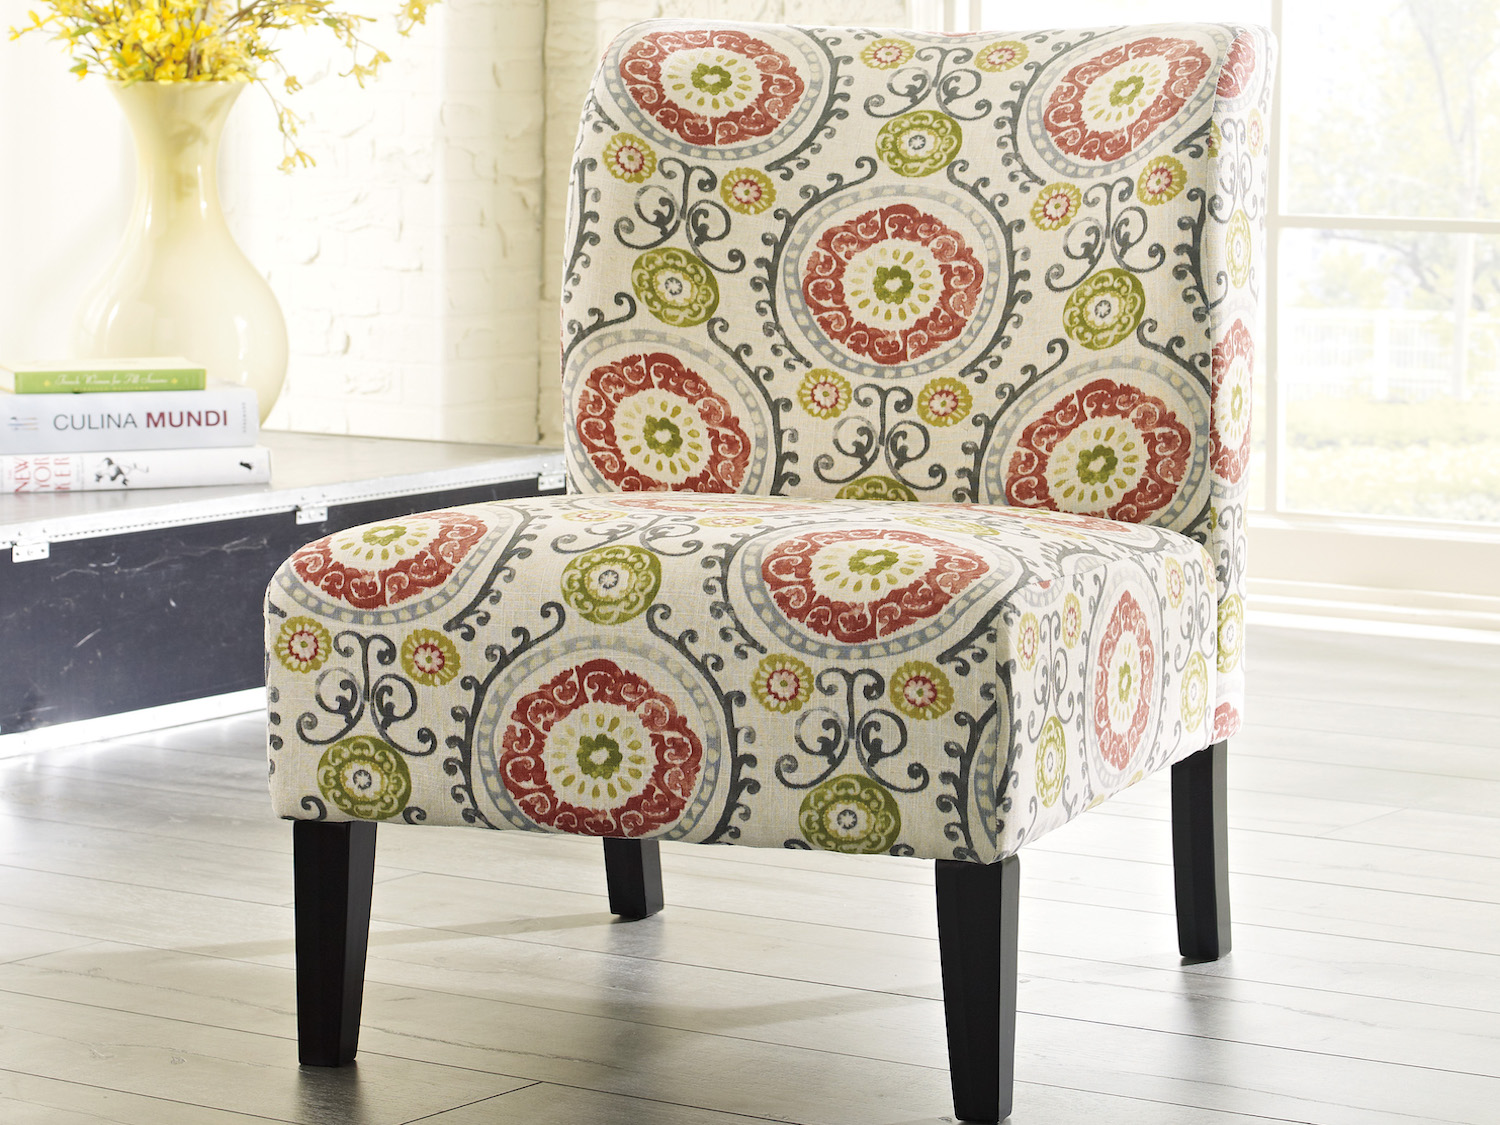 Honnaly Accent Chair, 53302, Accent Chairs by Midha Furniture to Brampton, Mississauga, Etobicoke, Toronto, Scraborough, Caledon, Oakville, Markham, Ajax, Pickering, Oshawa, Richmondhill, Kitchener, Hamilton and GTA area